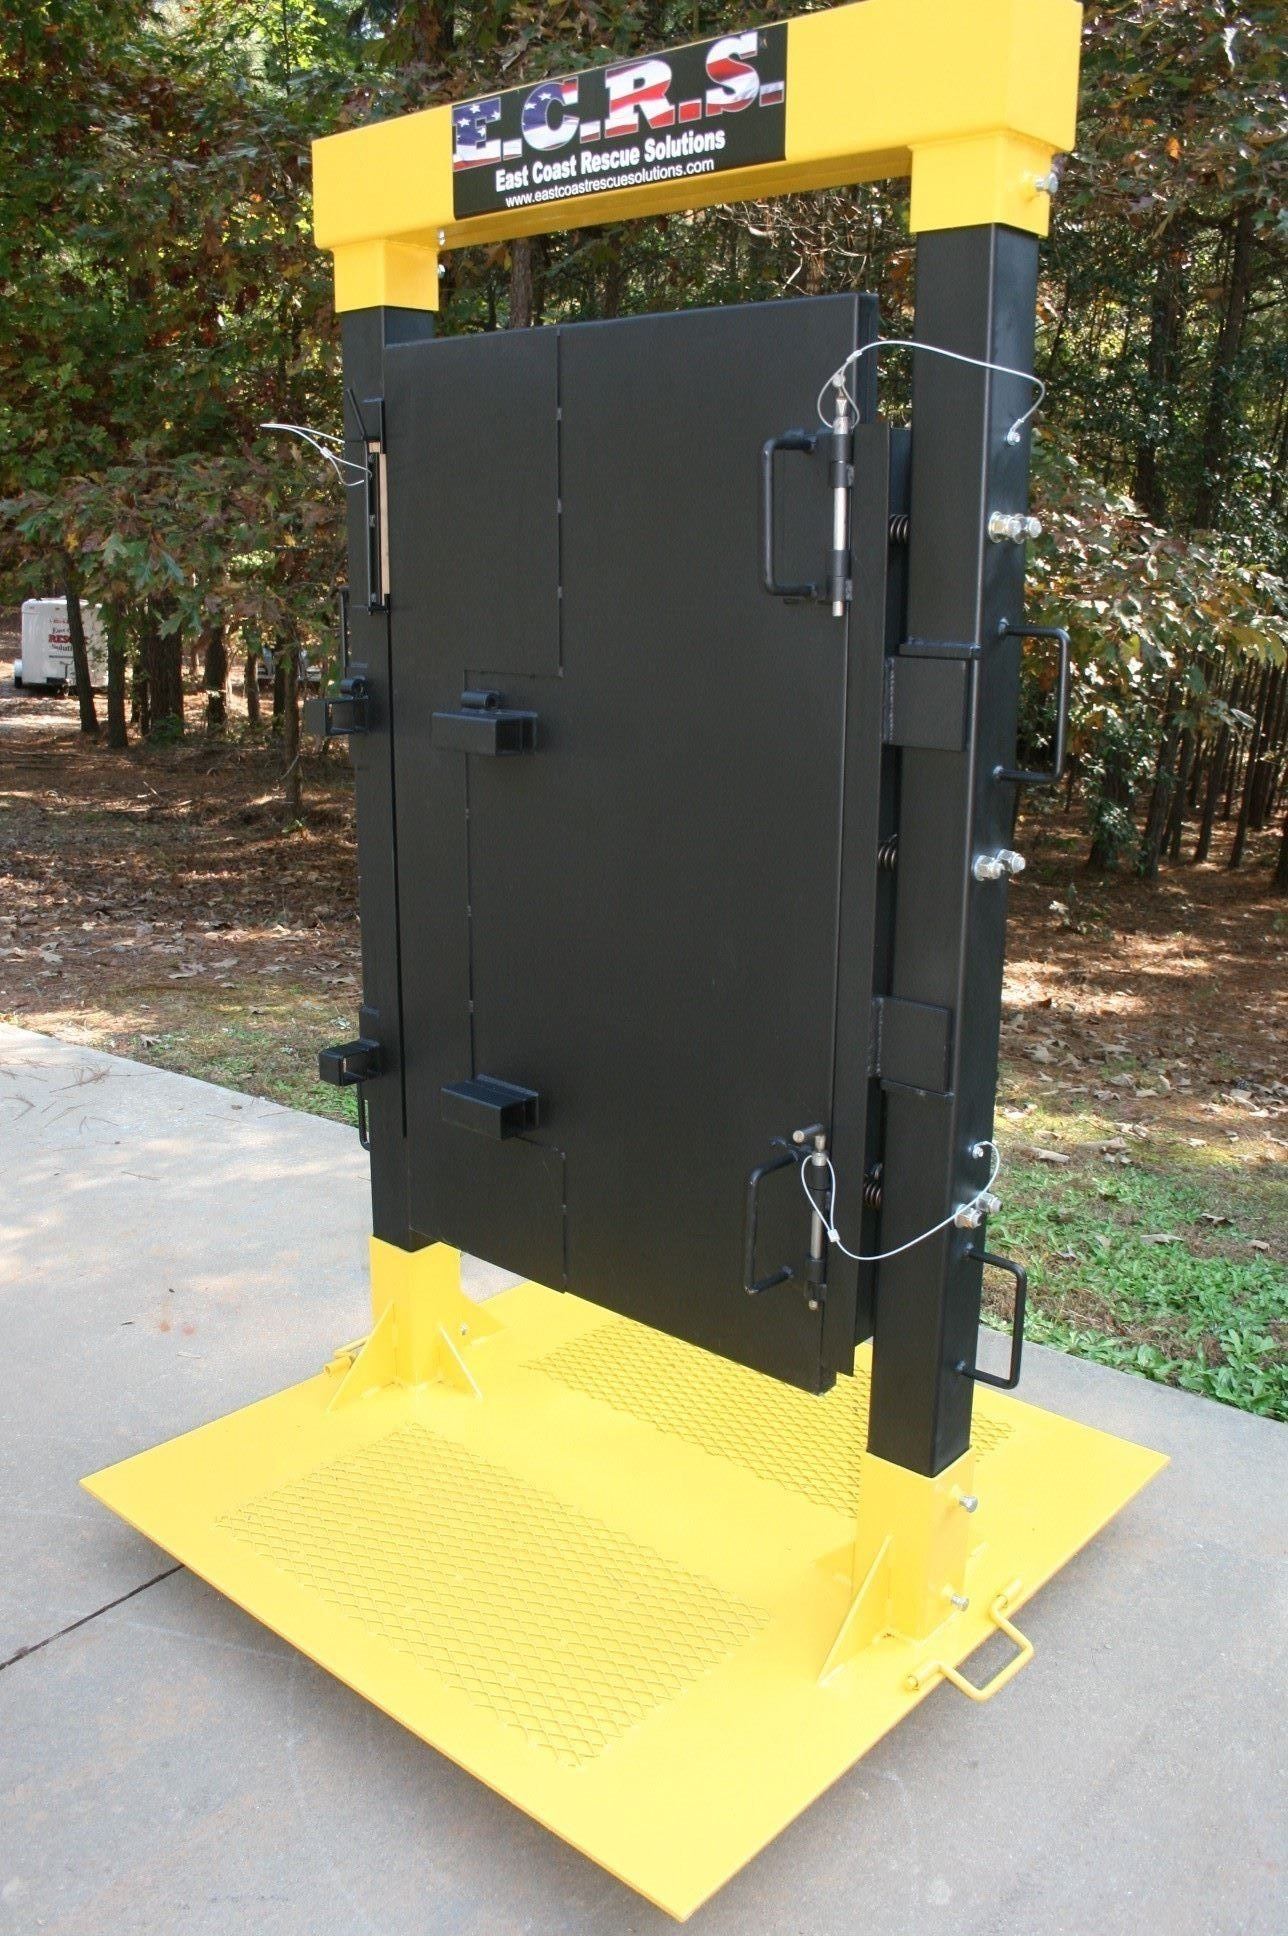 10 Pretty Volunteer Fire Department Training Ideas custom built forcible entry door simulator that allows firefighters 2021